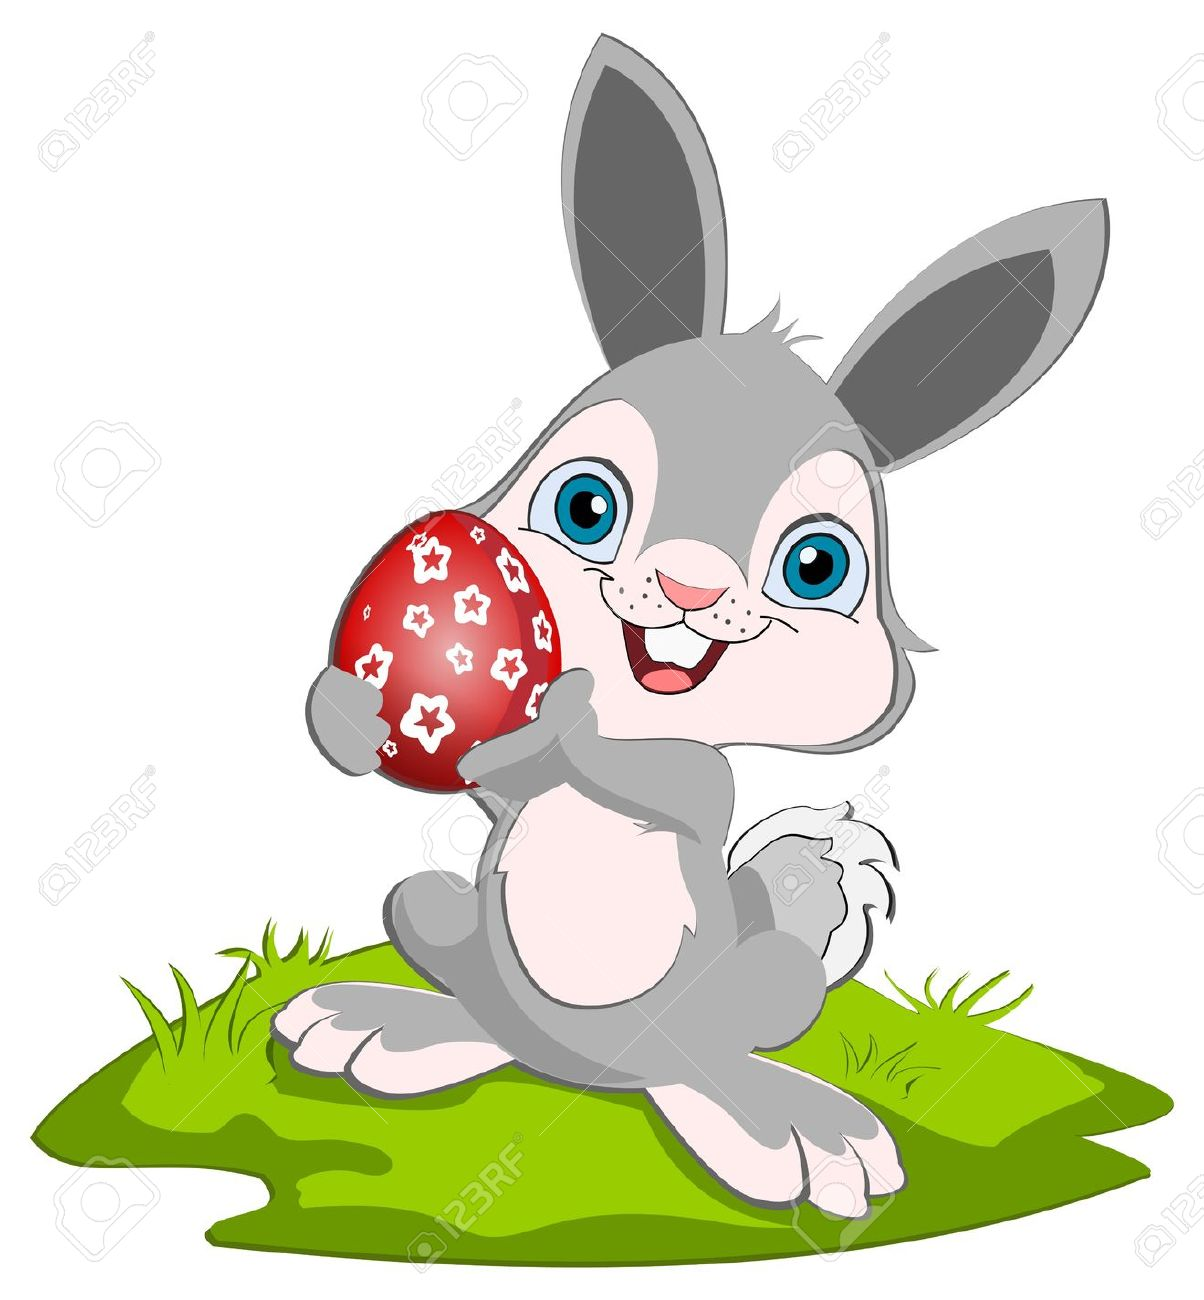 1204x1300 Easter Bunny Holding O Rad Easter Egg And Smiling. Royalty Free